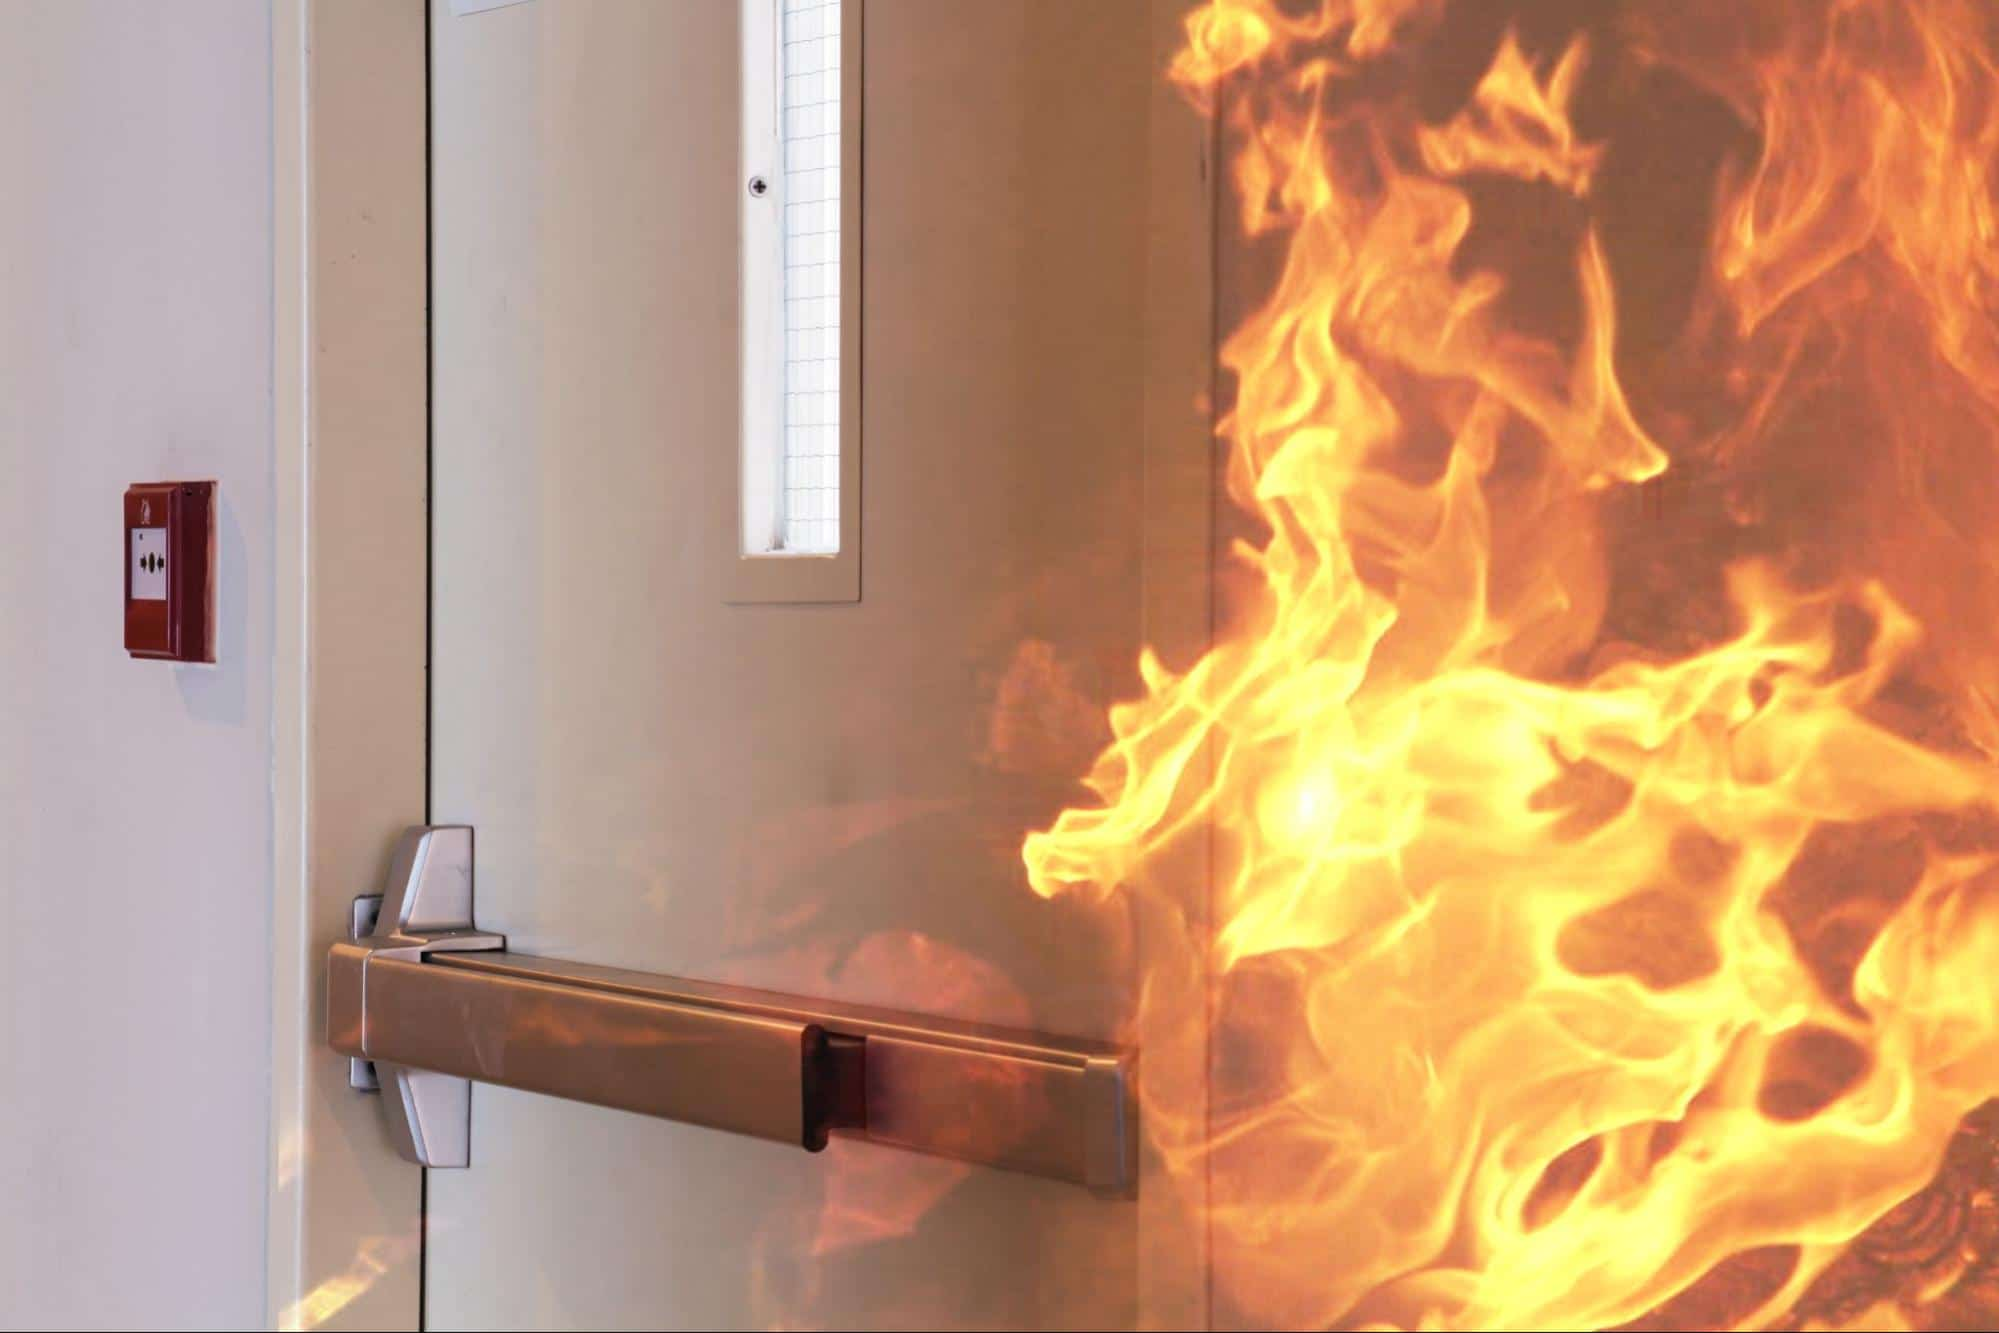 A fire burning behind a closed fire-rated door